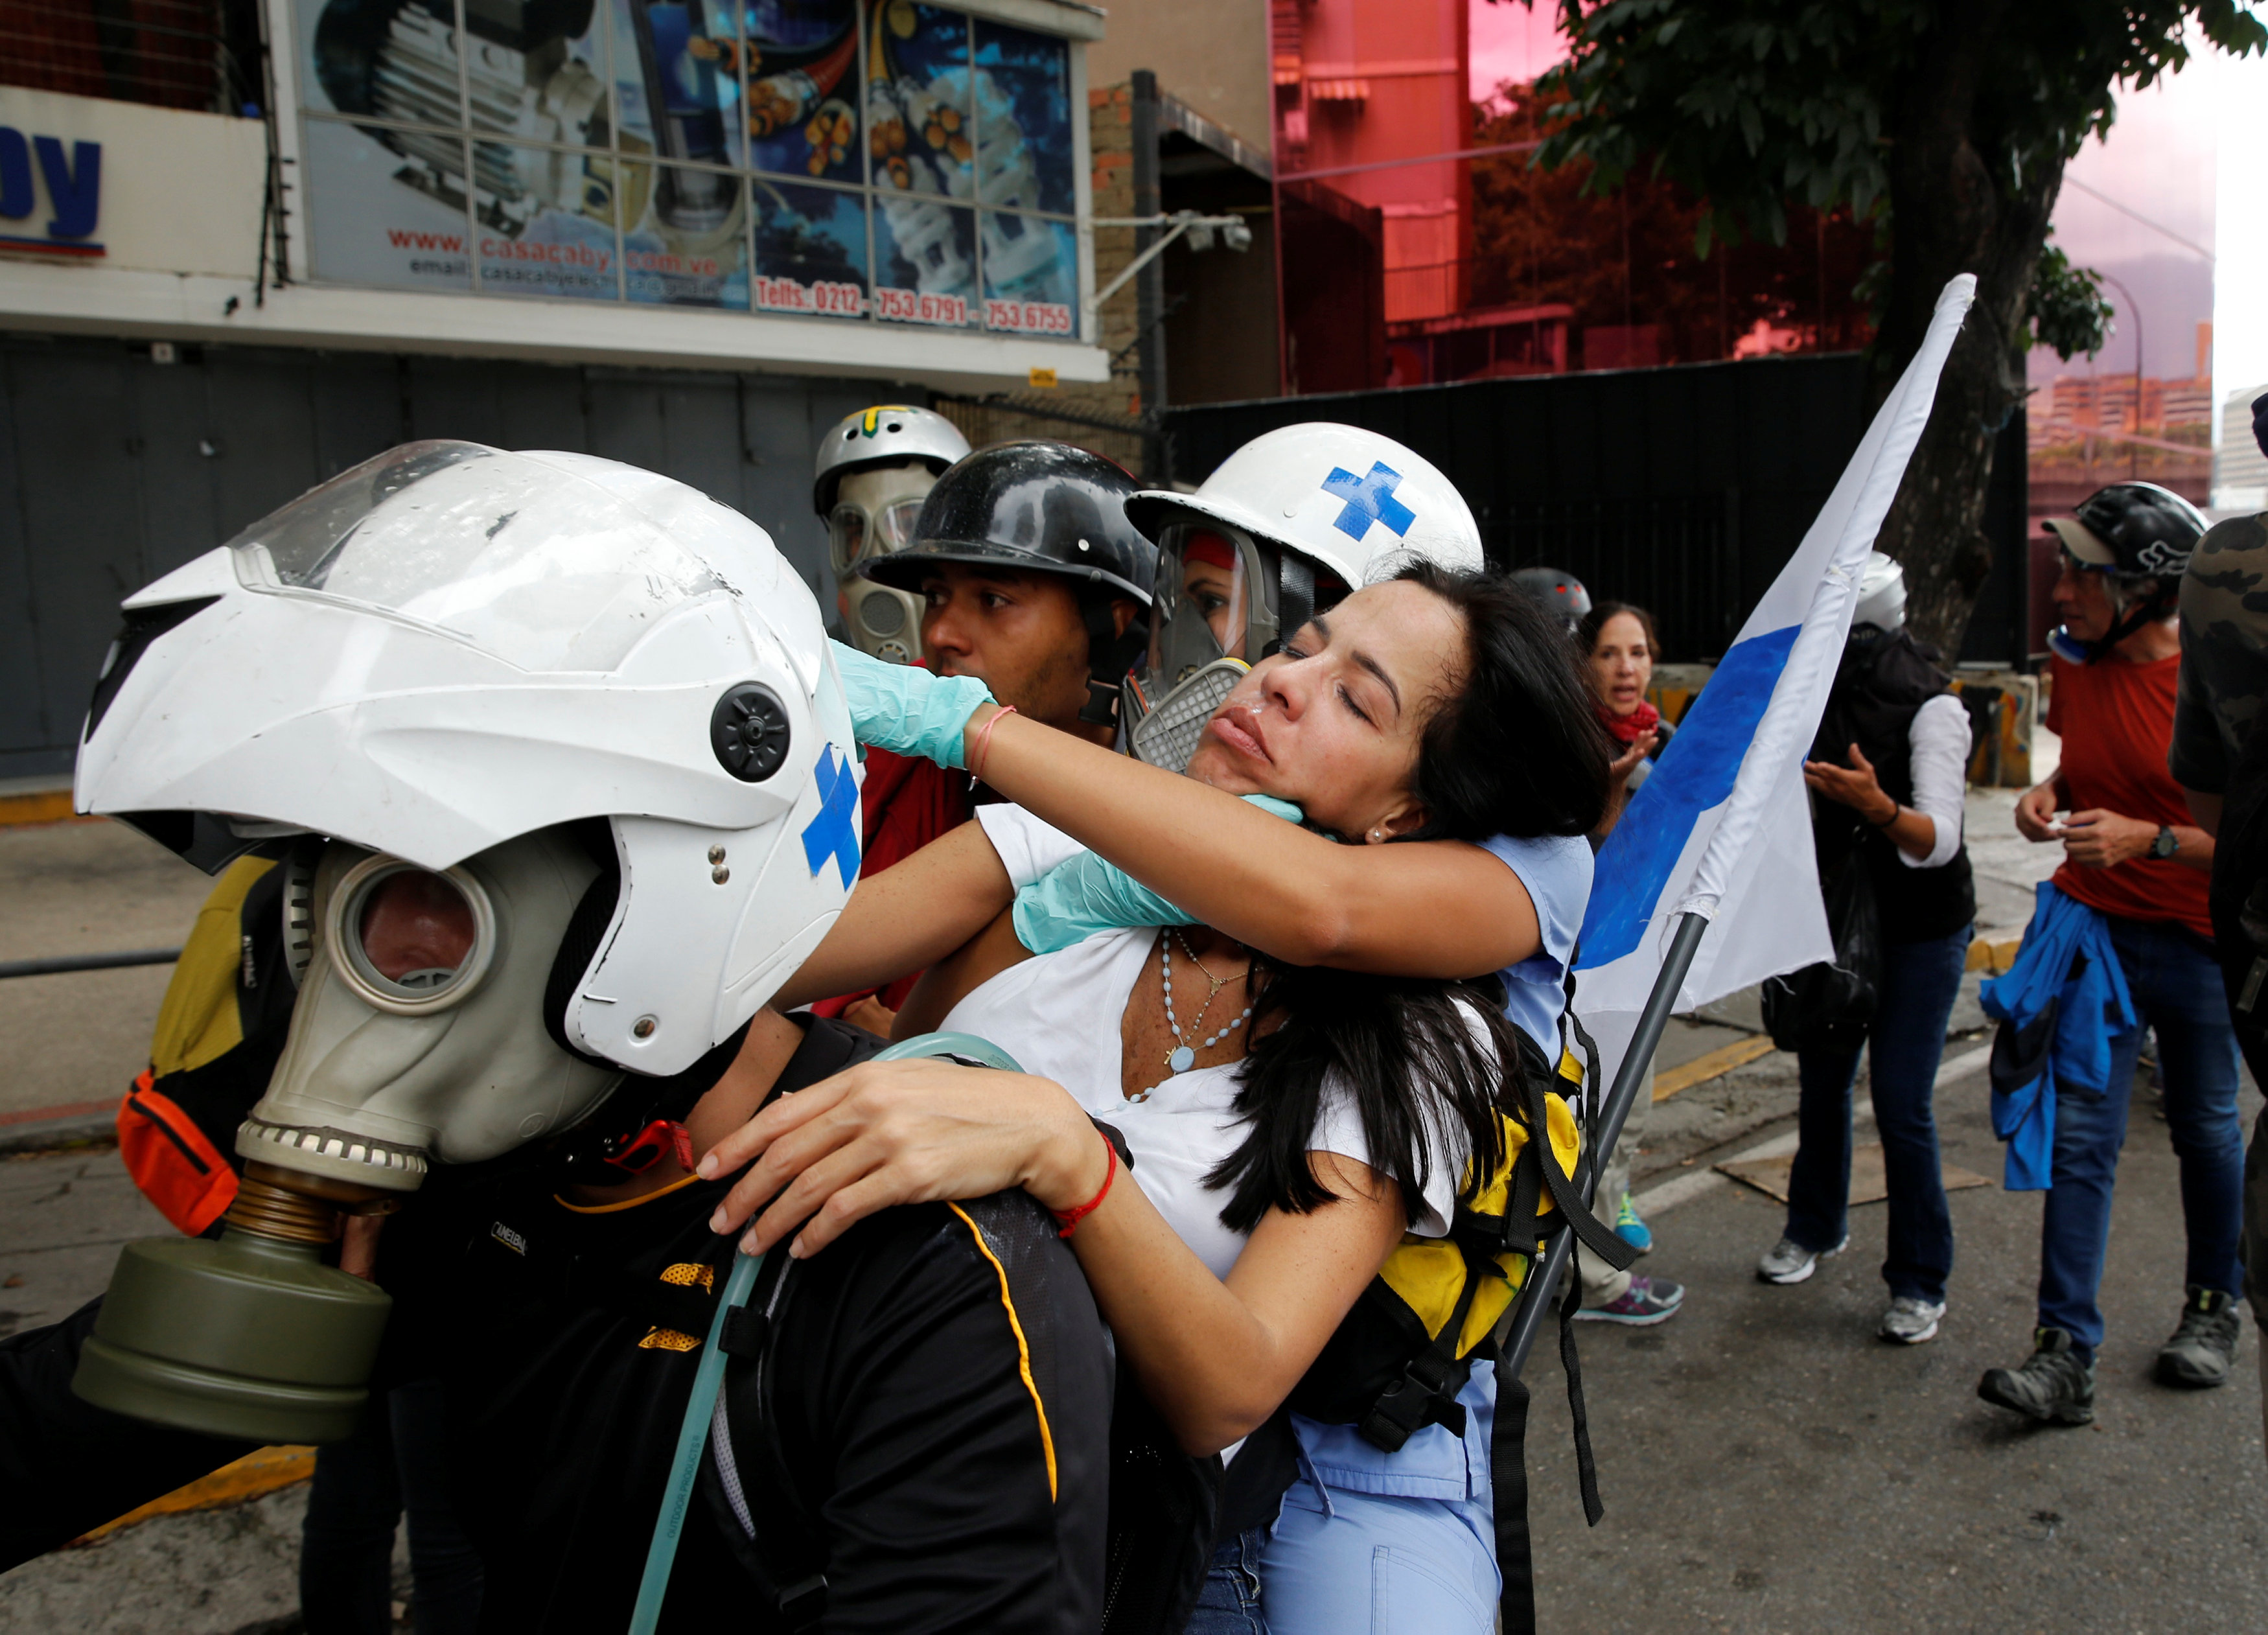 An opposition supporter affected by tear gas is carried away on a motorcycle during a rally against Venezuela's President Nicolas Maduro in Caracas, Venezuela, June 10, 2017. REUTERS/Ivan Alvarado